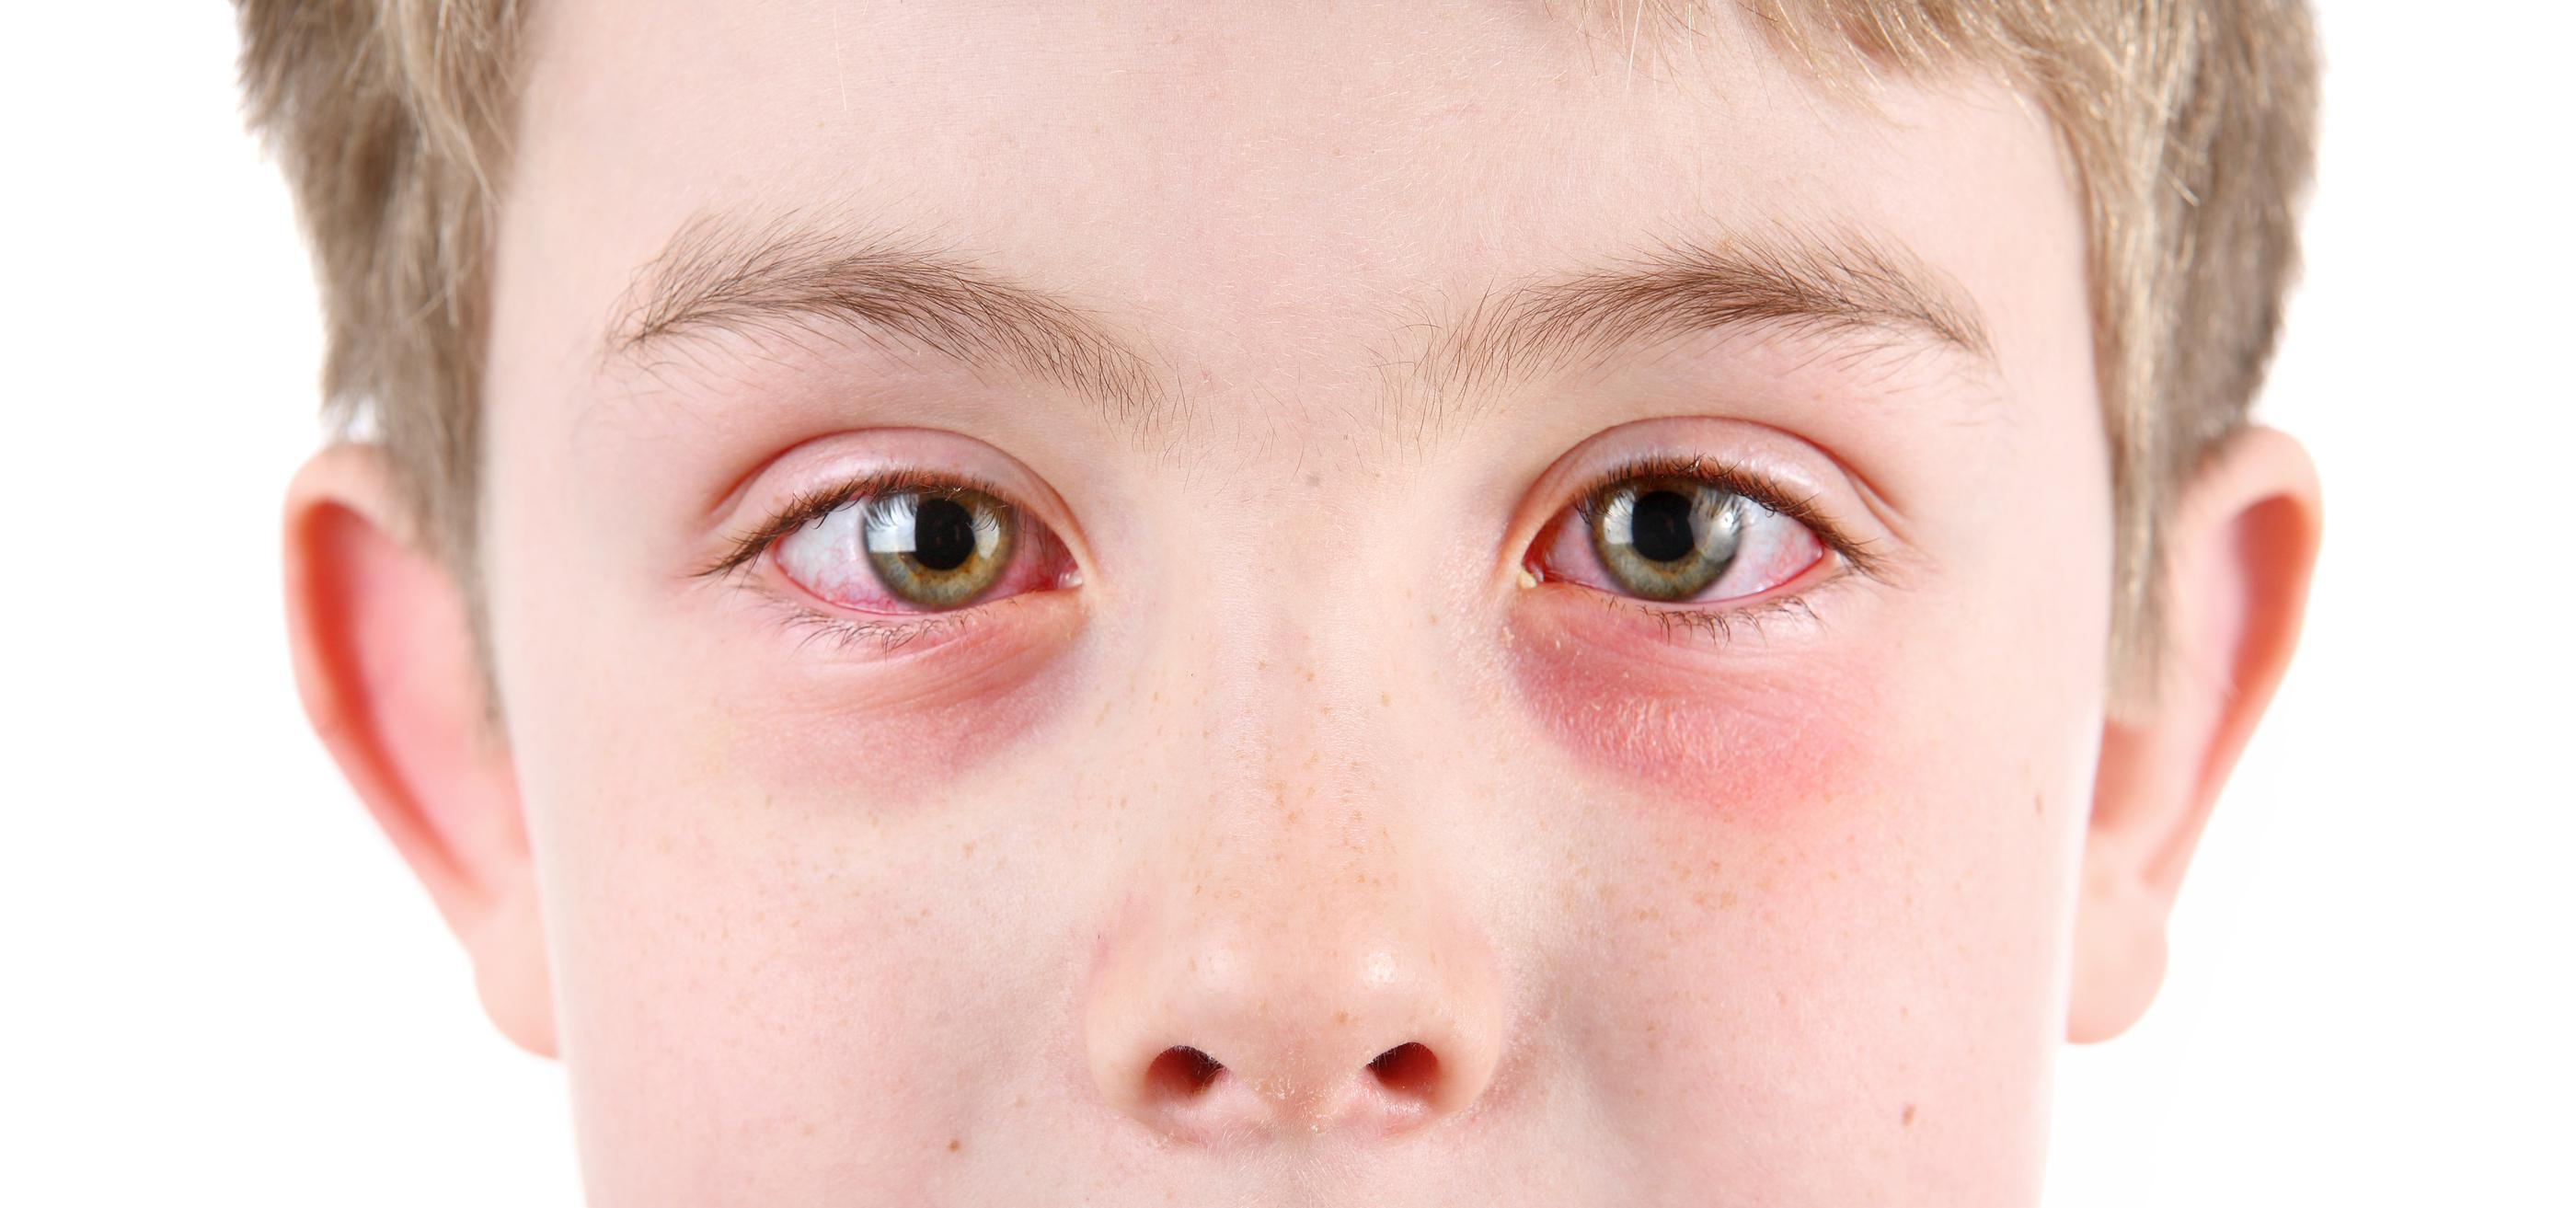 5.-Food--Animal-Or-Environmental-Allergies--Allergic-Conjunctivitis-